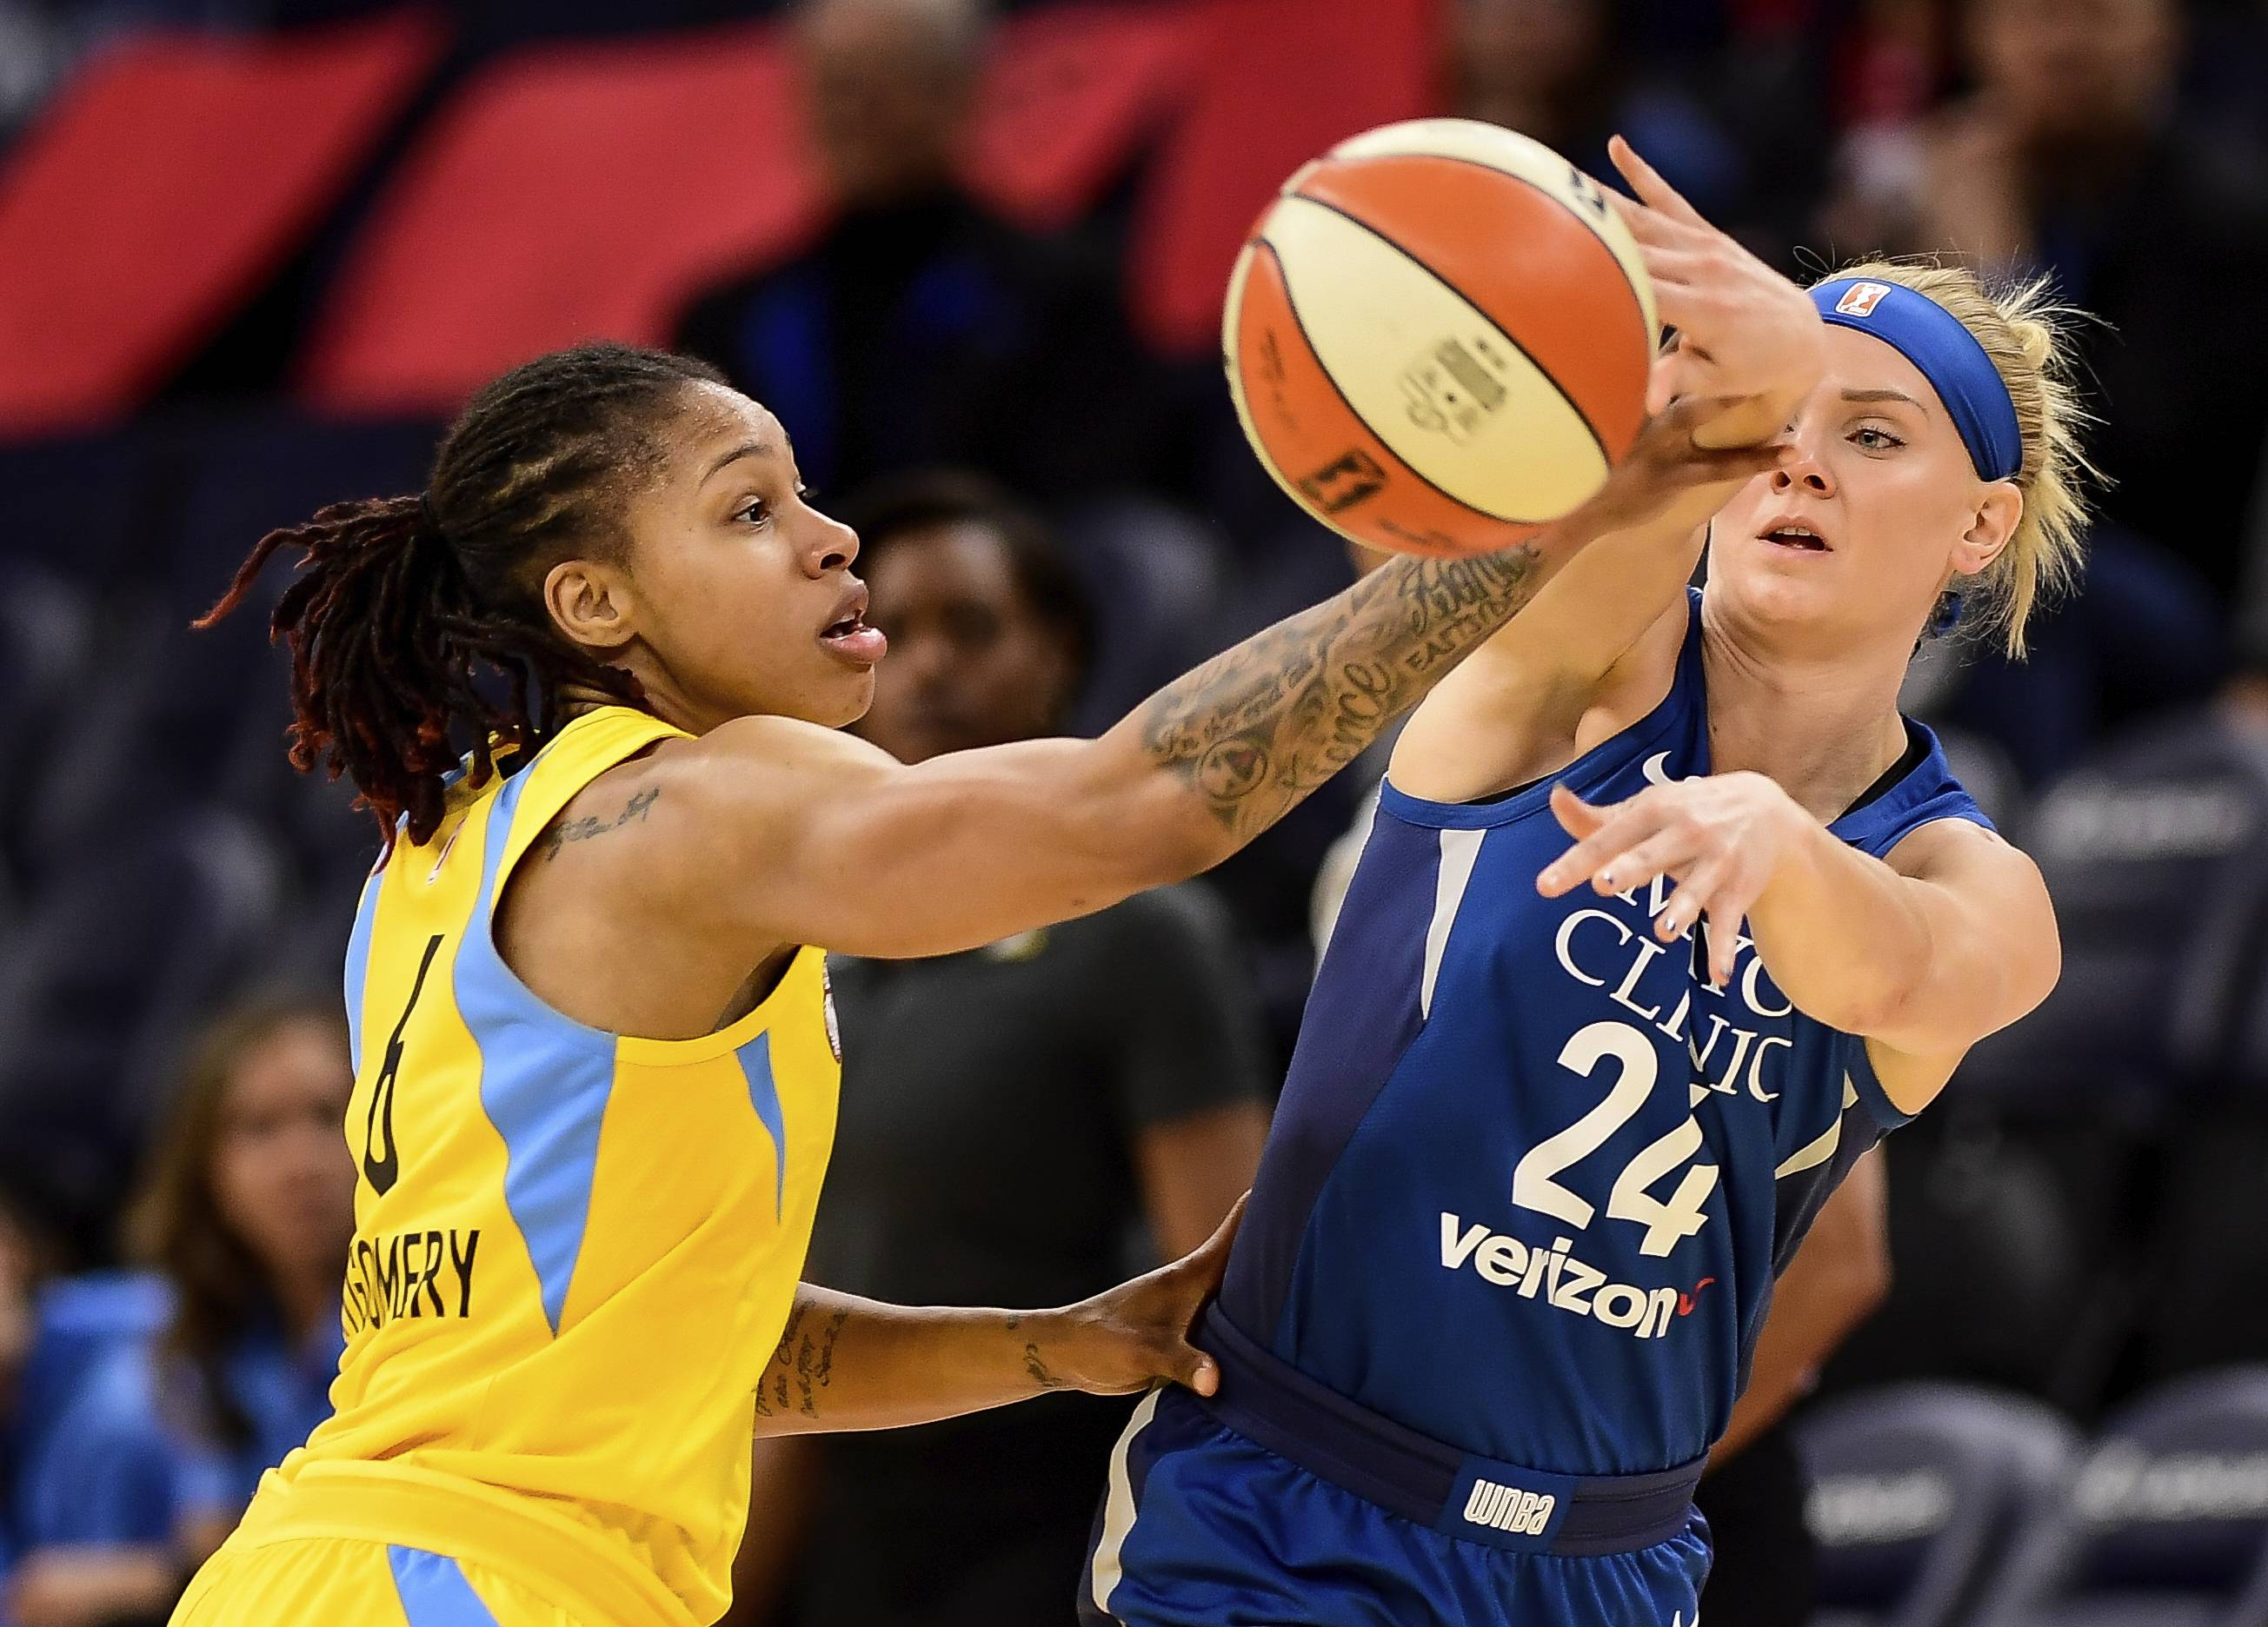 Minnesota Lynx guard Carlie Wagner passes the ball around Chicago Sky forward Alex Montgomery (6) during the second quarter of a WNBA preseason basketball game Saturday, May 12, 2018, in Minneapolis. (Aaron Lavinsky/Star Tribune via AP)